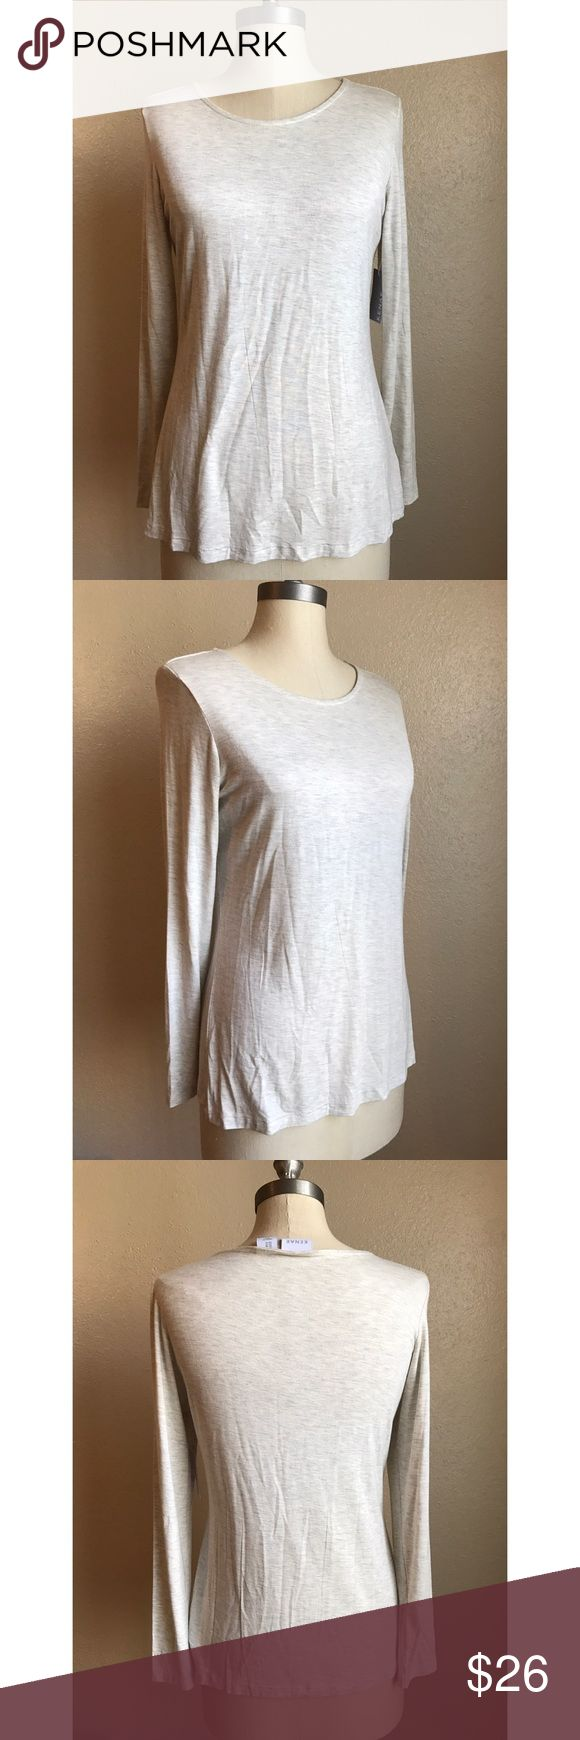 ❤️Kenar Long Sleeve Top❤️ New with tags. Beige long sleeve top. Size small. Kenar Tops Tees - Long Sleeve